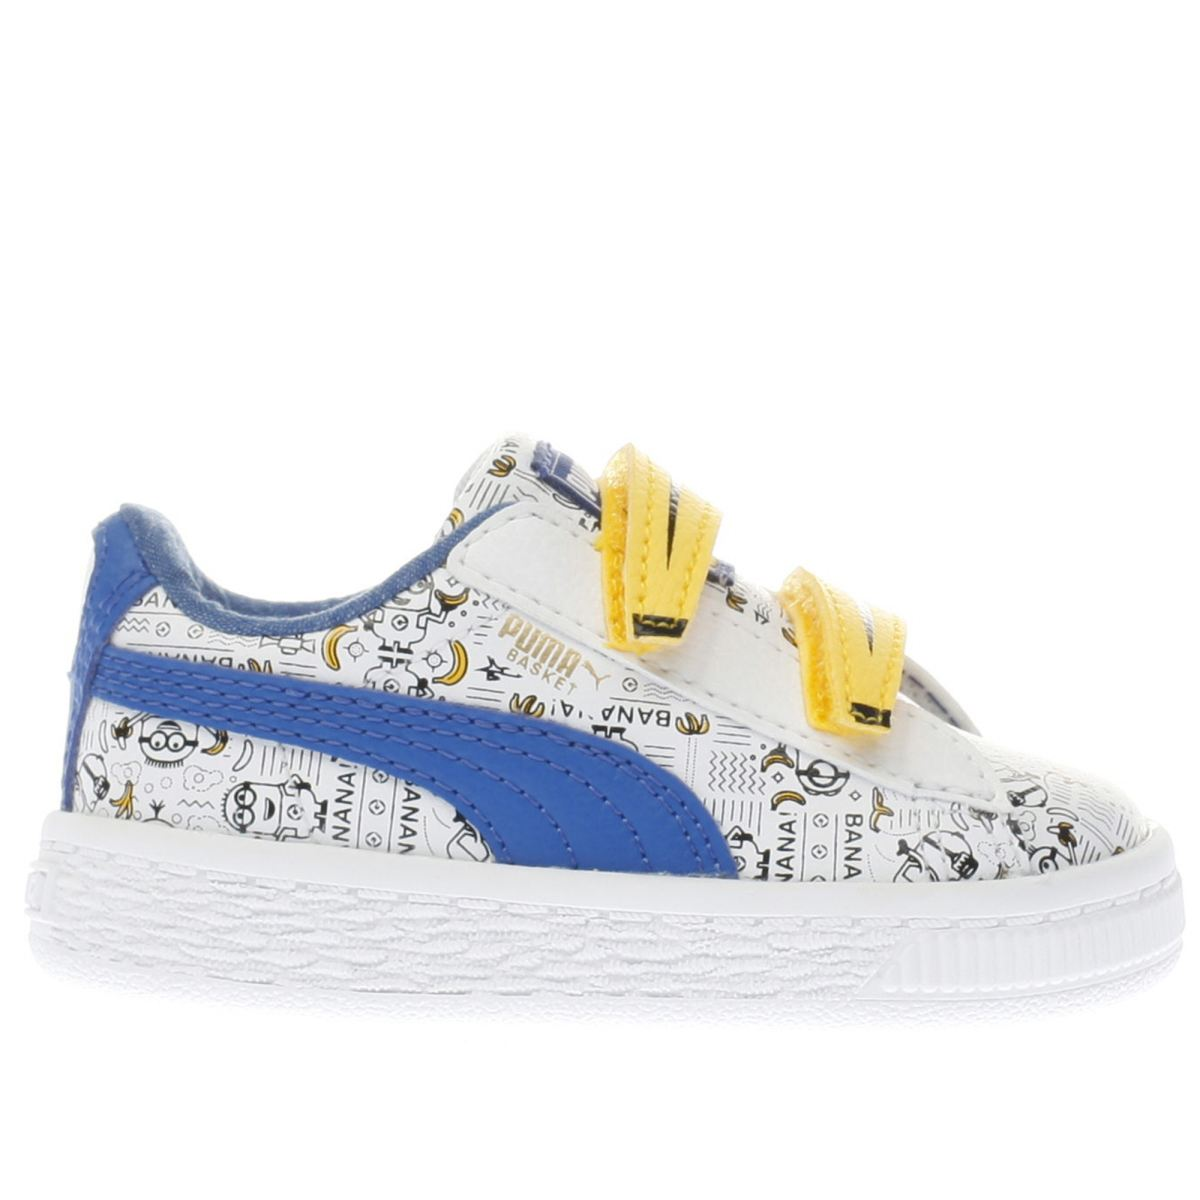 puma white & yellow minions basket Unisex Toddler Toddler